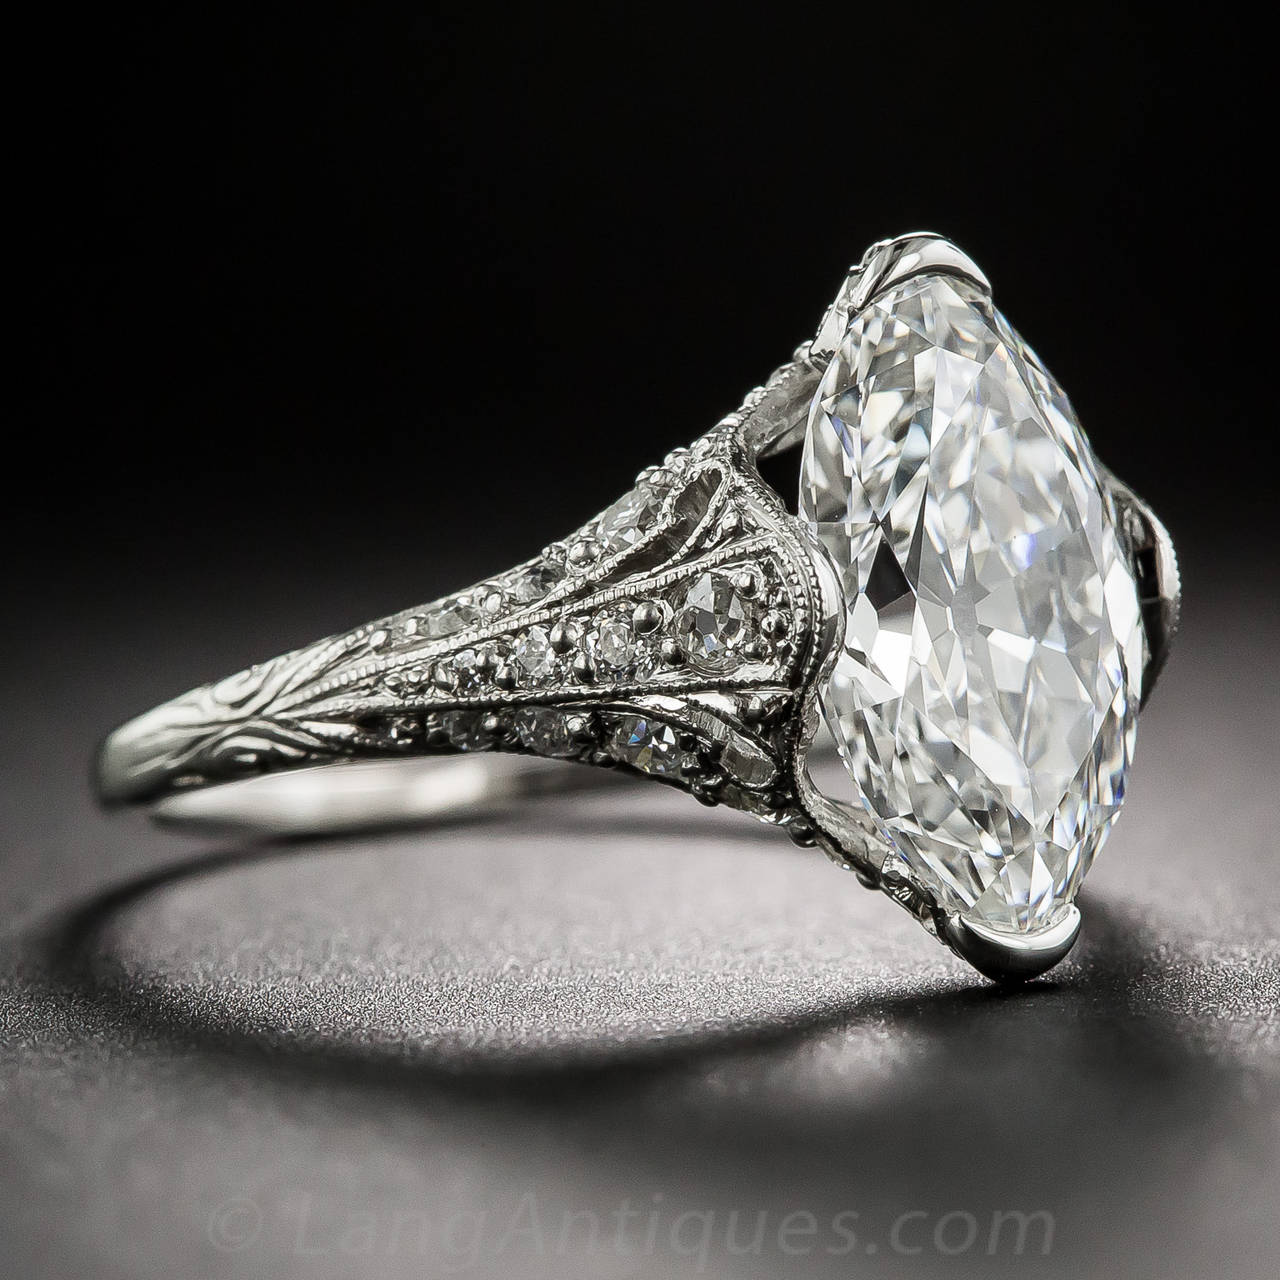 Art Deco Tiffany & Co. Edwardian 3.14 Carat Marquise Diamond Platinum Ring For Sale